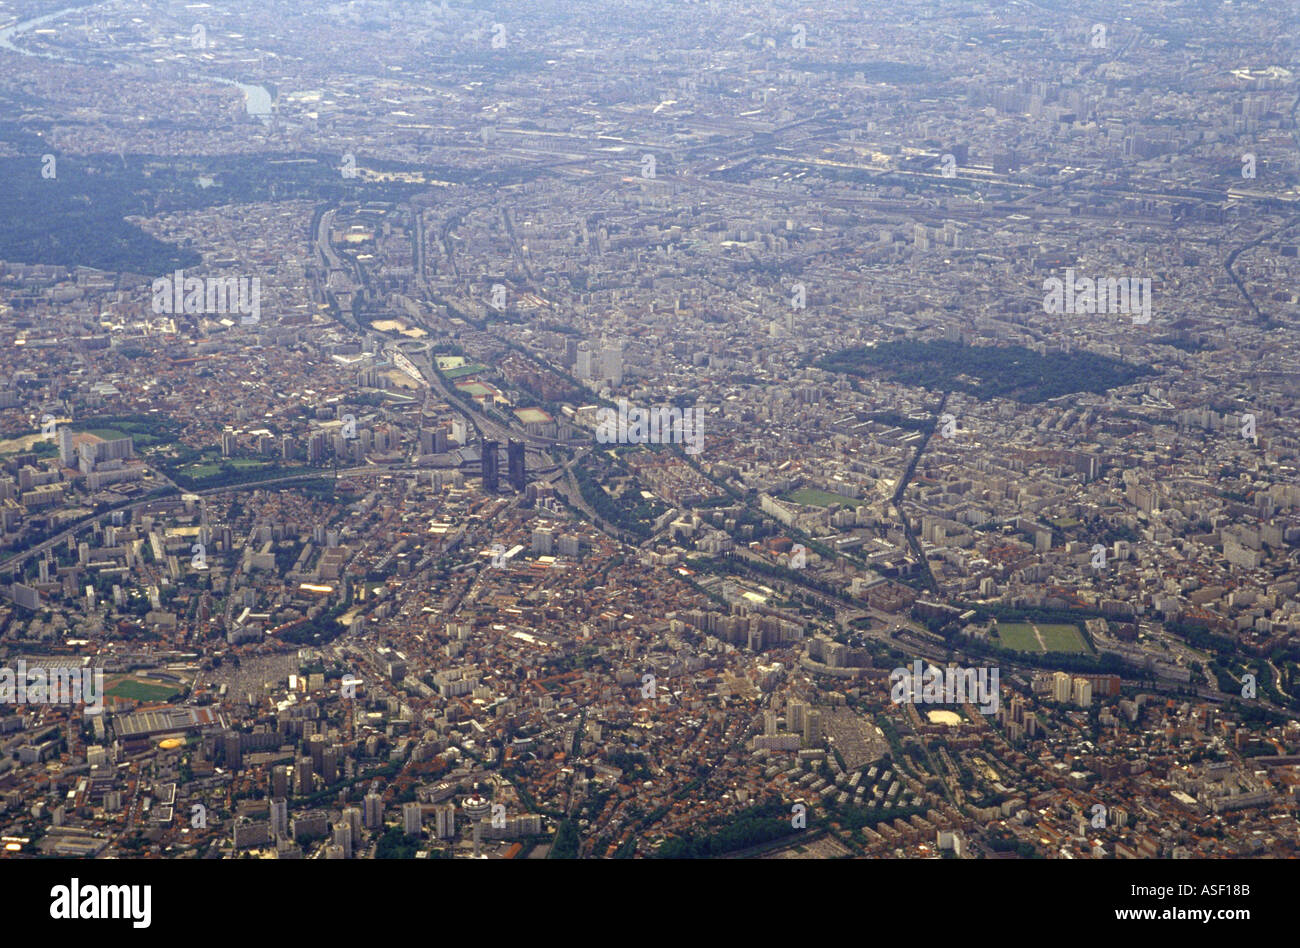 A view of Paris from above - Stock Image